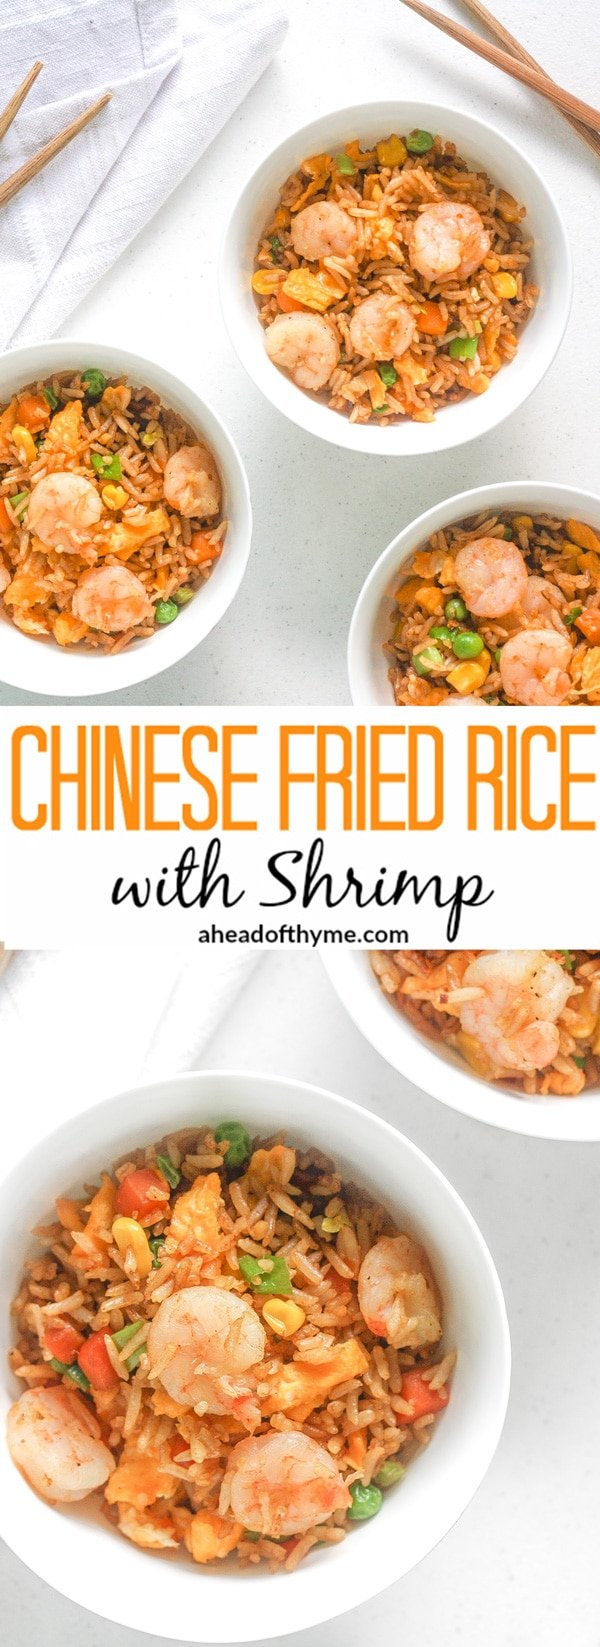 Chinese fried rice with shrimp ahead of thyme chinese fried rice with shrimp make your own chinese fried rice with shrimp in 25 forumfinder Images